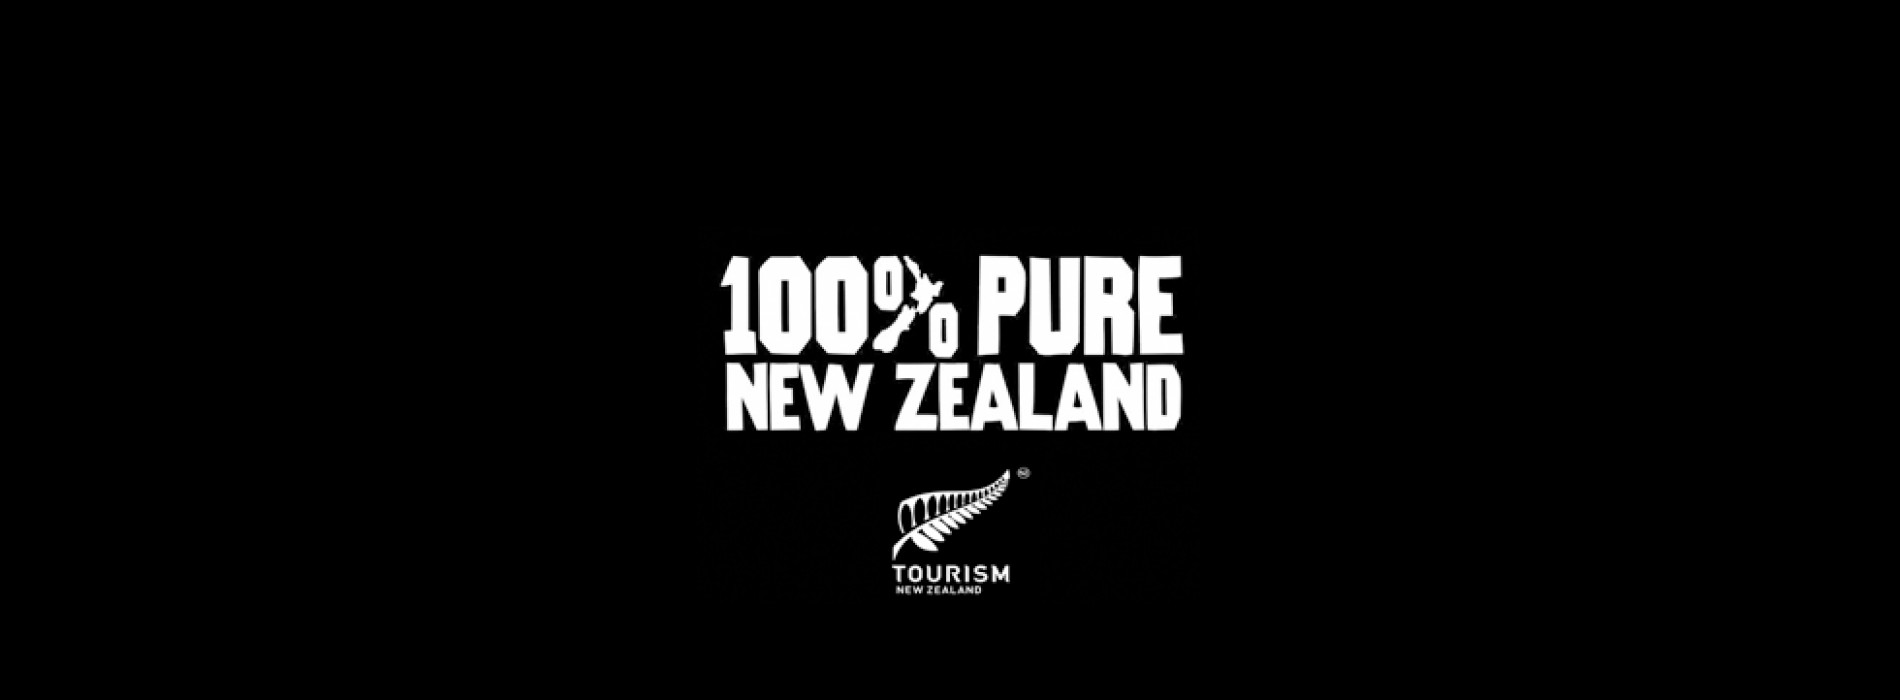 NZ eyes double-digit growth in visitors from India by May 2018